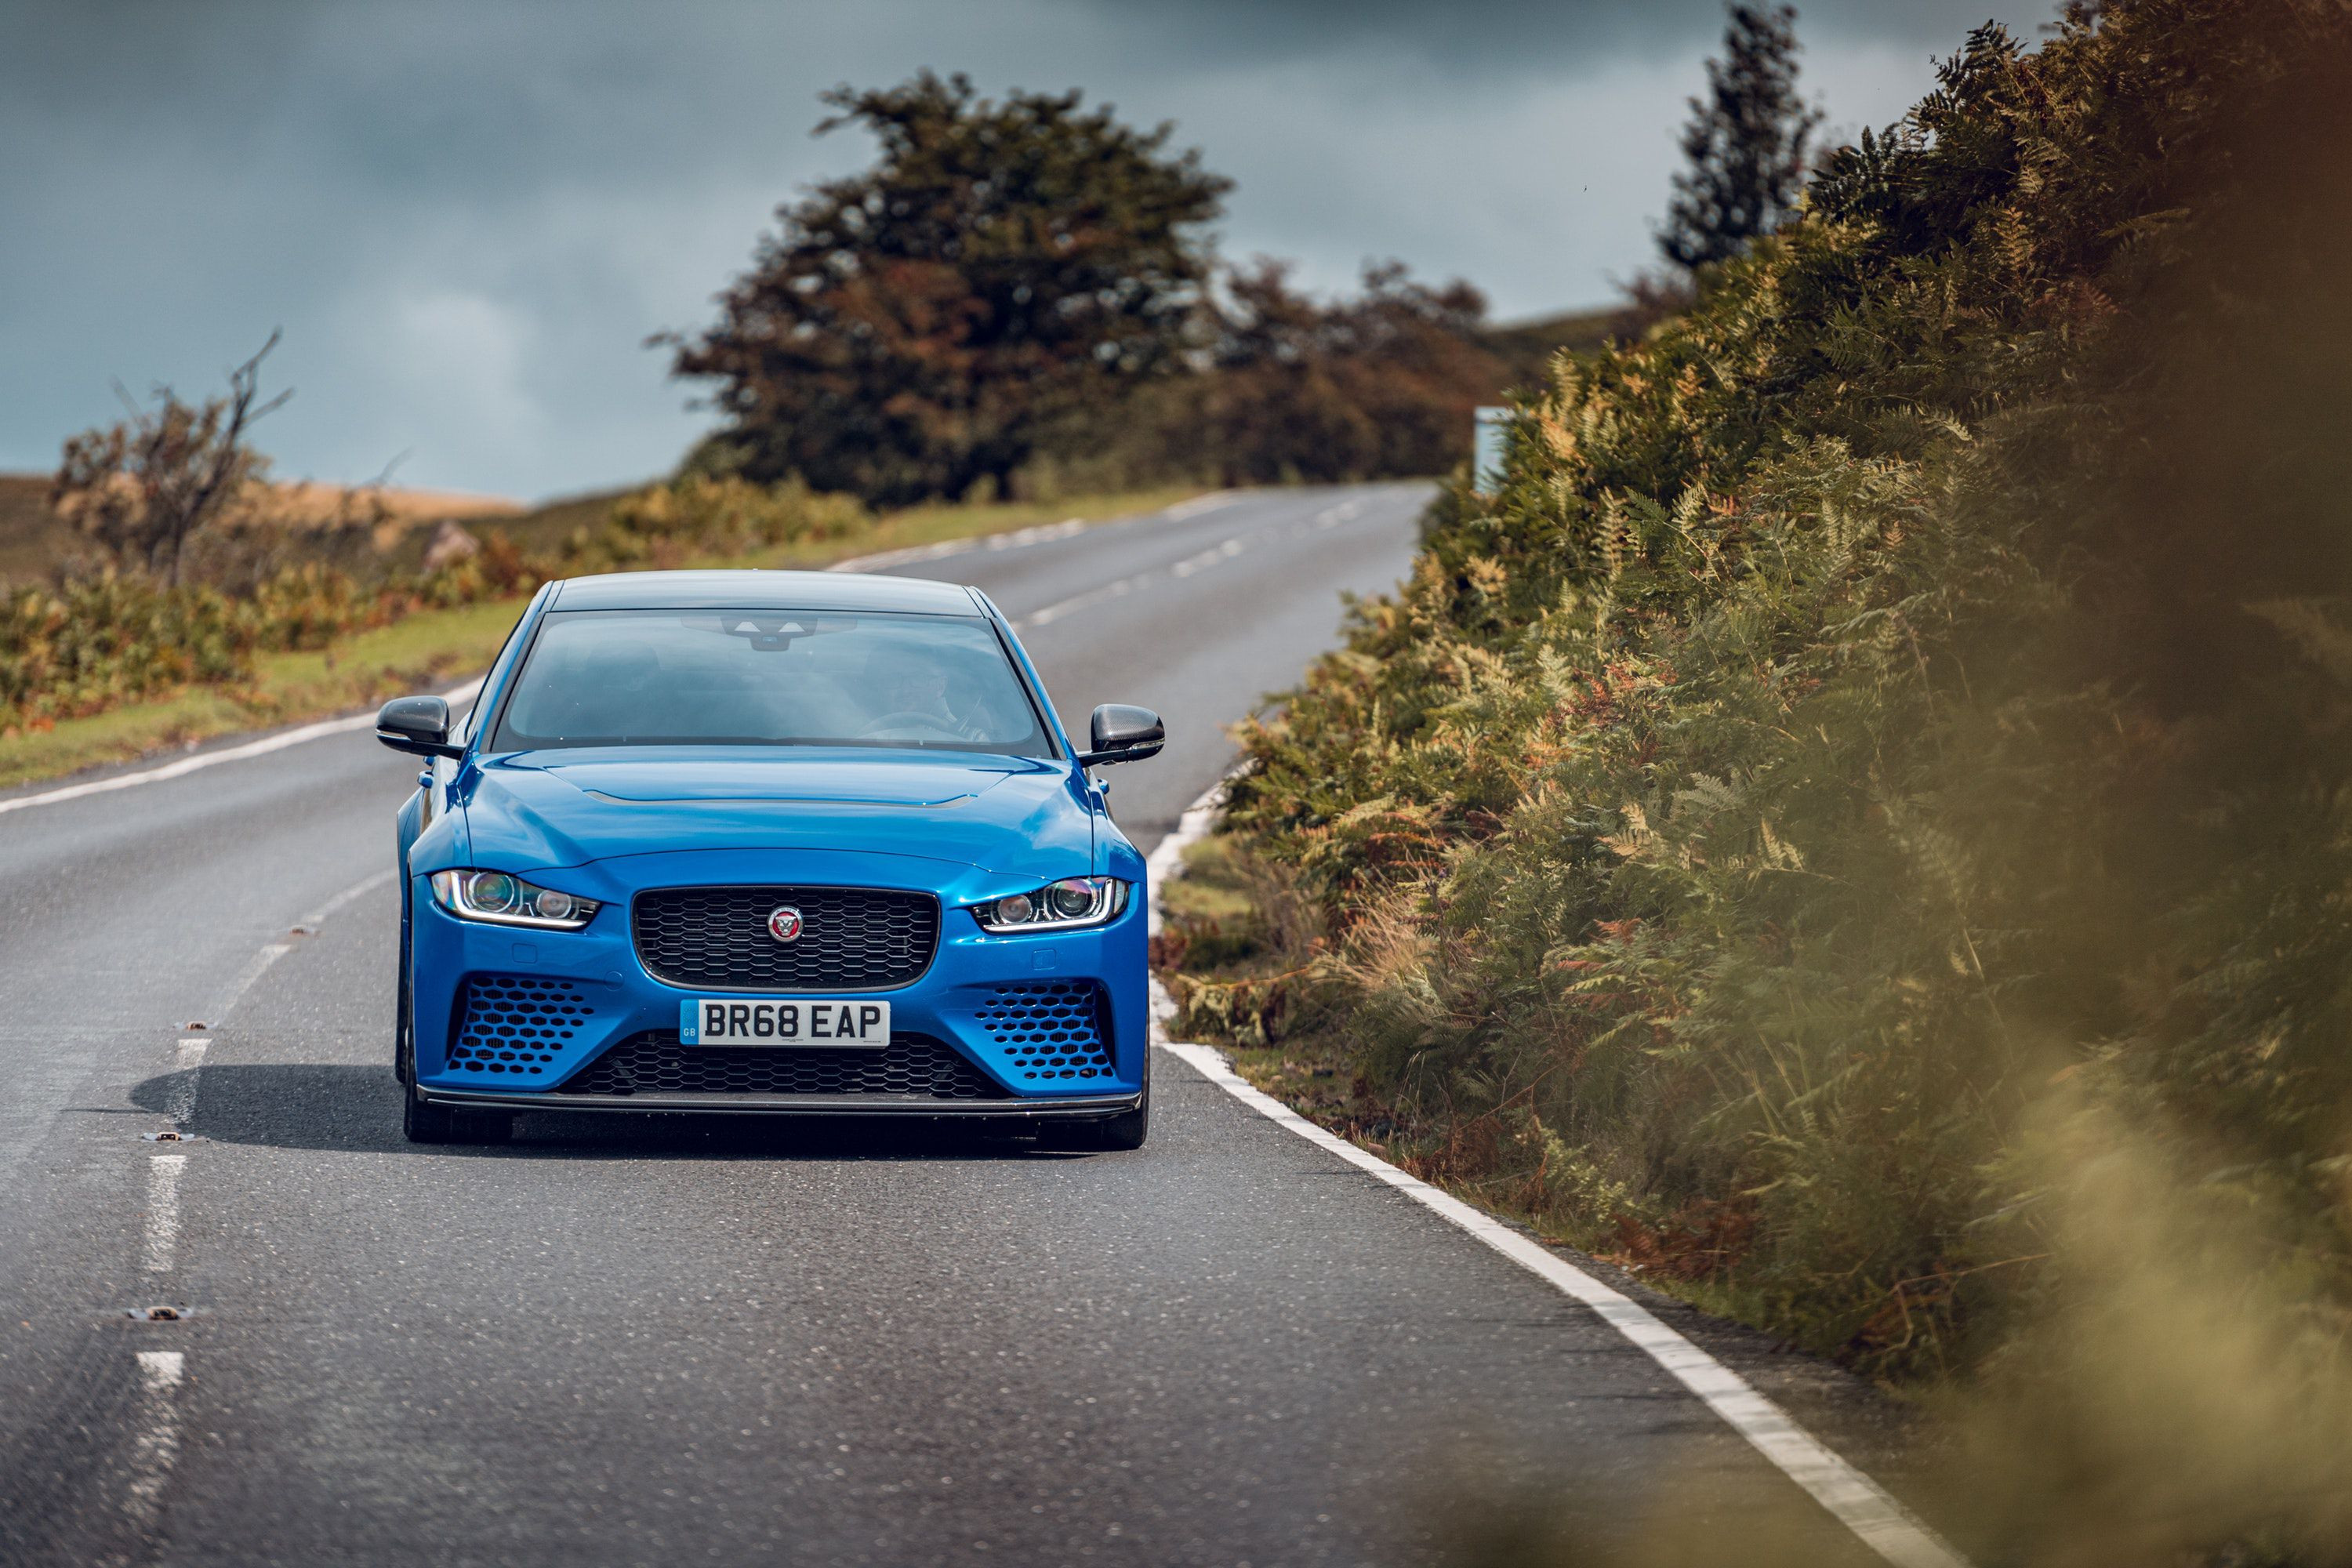 Front view of a blue jaguar XE SV driving on a road